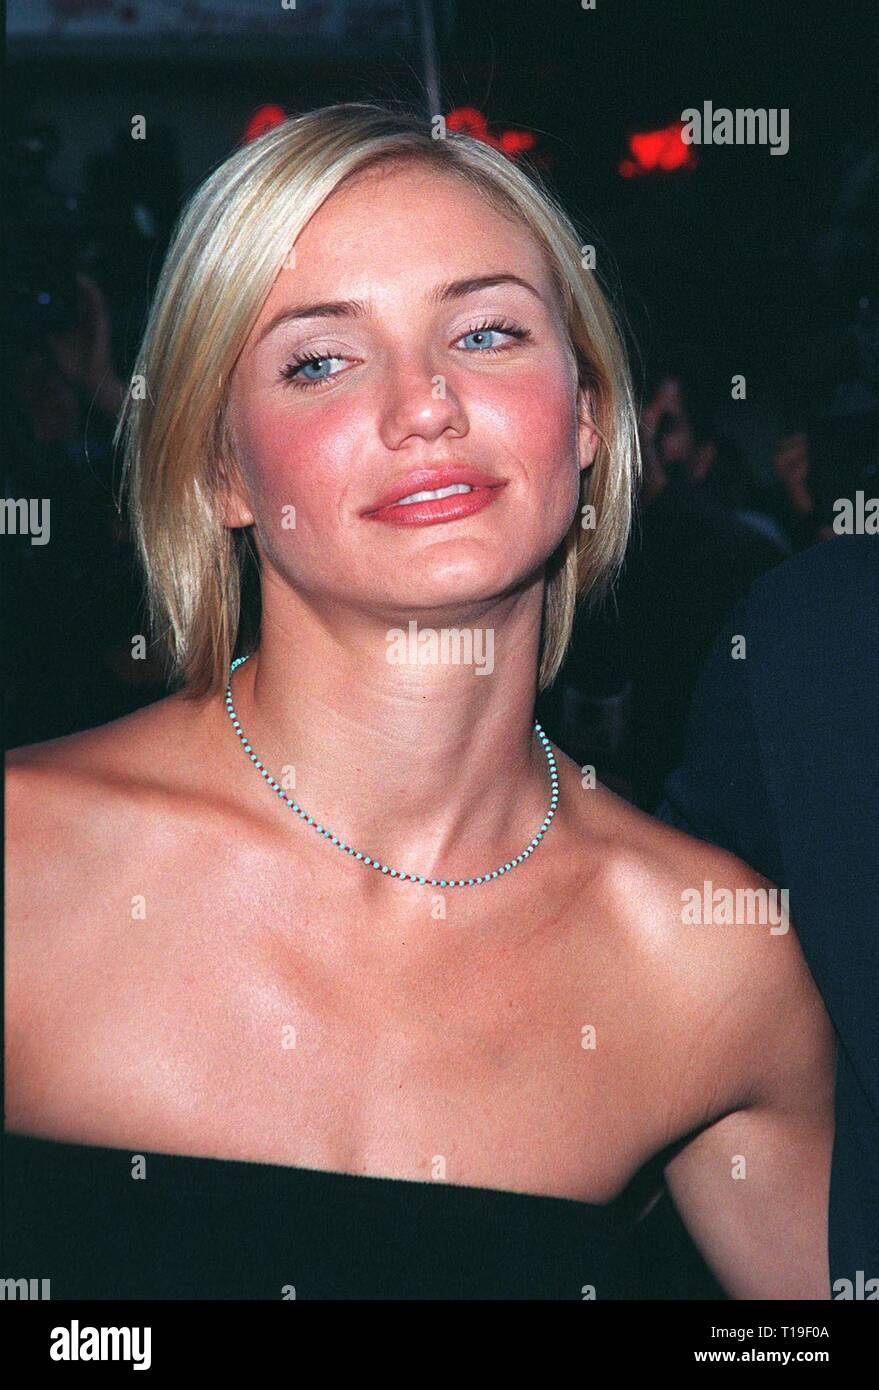 LOS ANGELES, CA - July 9, 1998: Actress CAMERON DIAZ at the world premiere, in Los Angeles, of her new movie 'There's Something About Mary.' - Stock Image